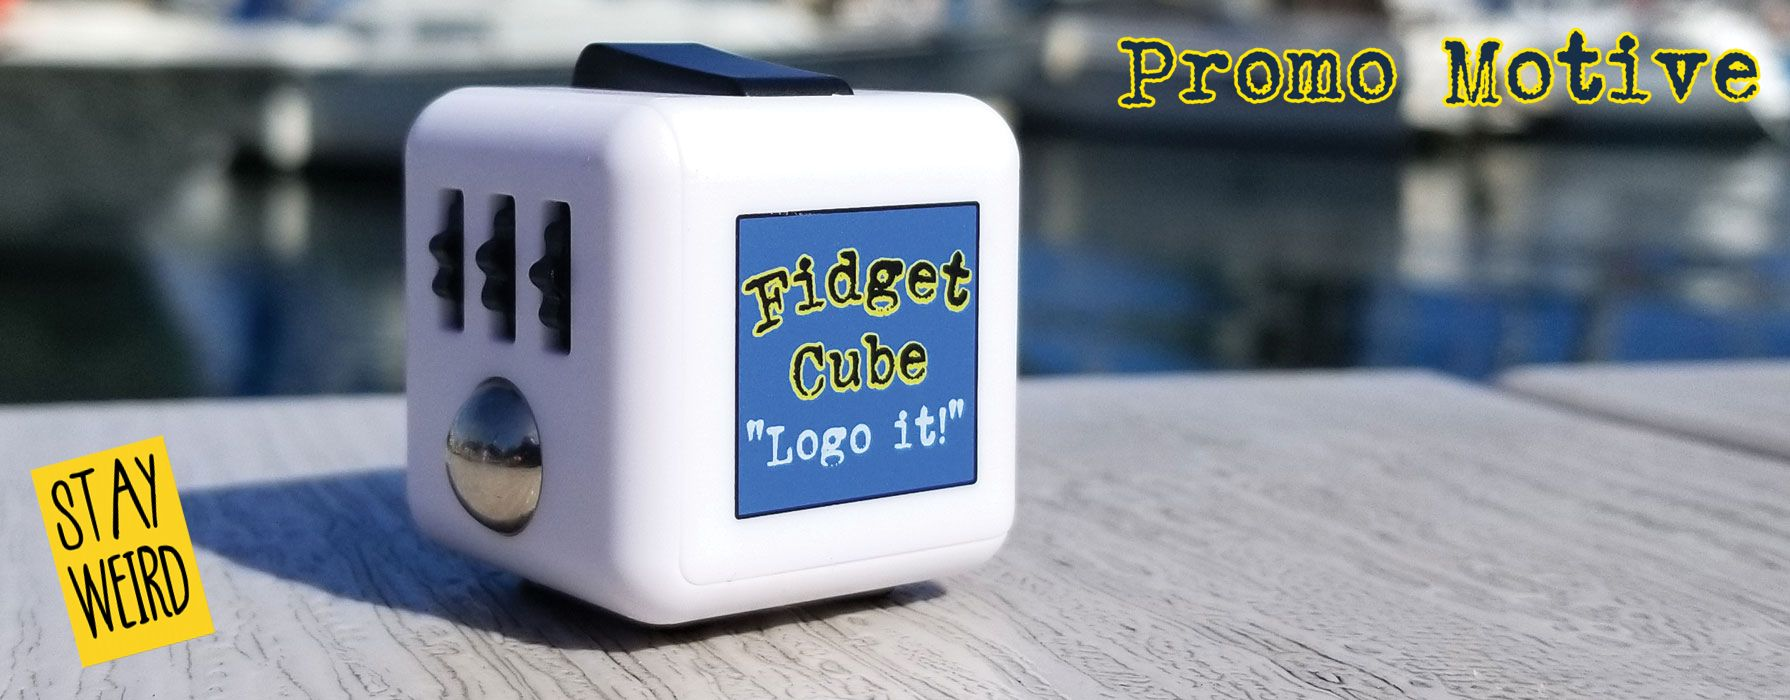 fidget cube for promotional product